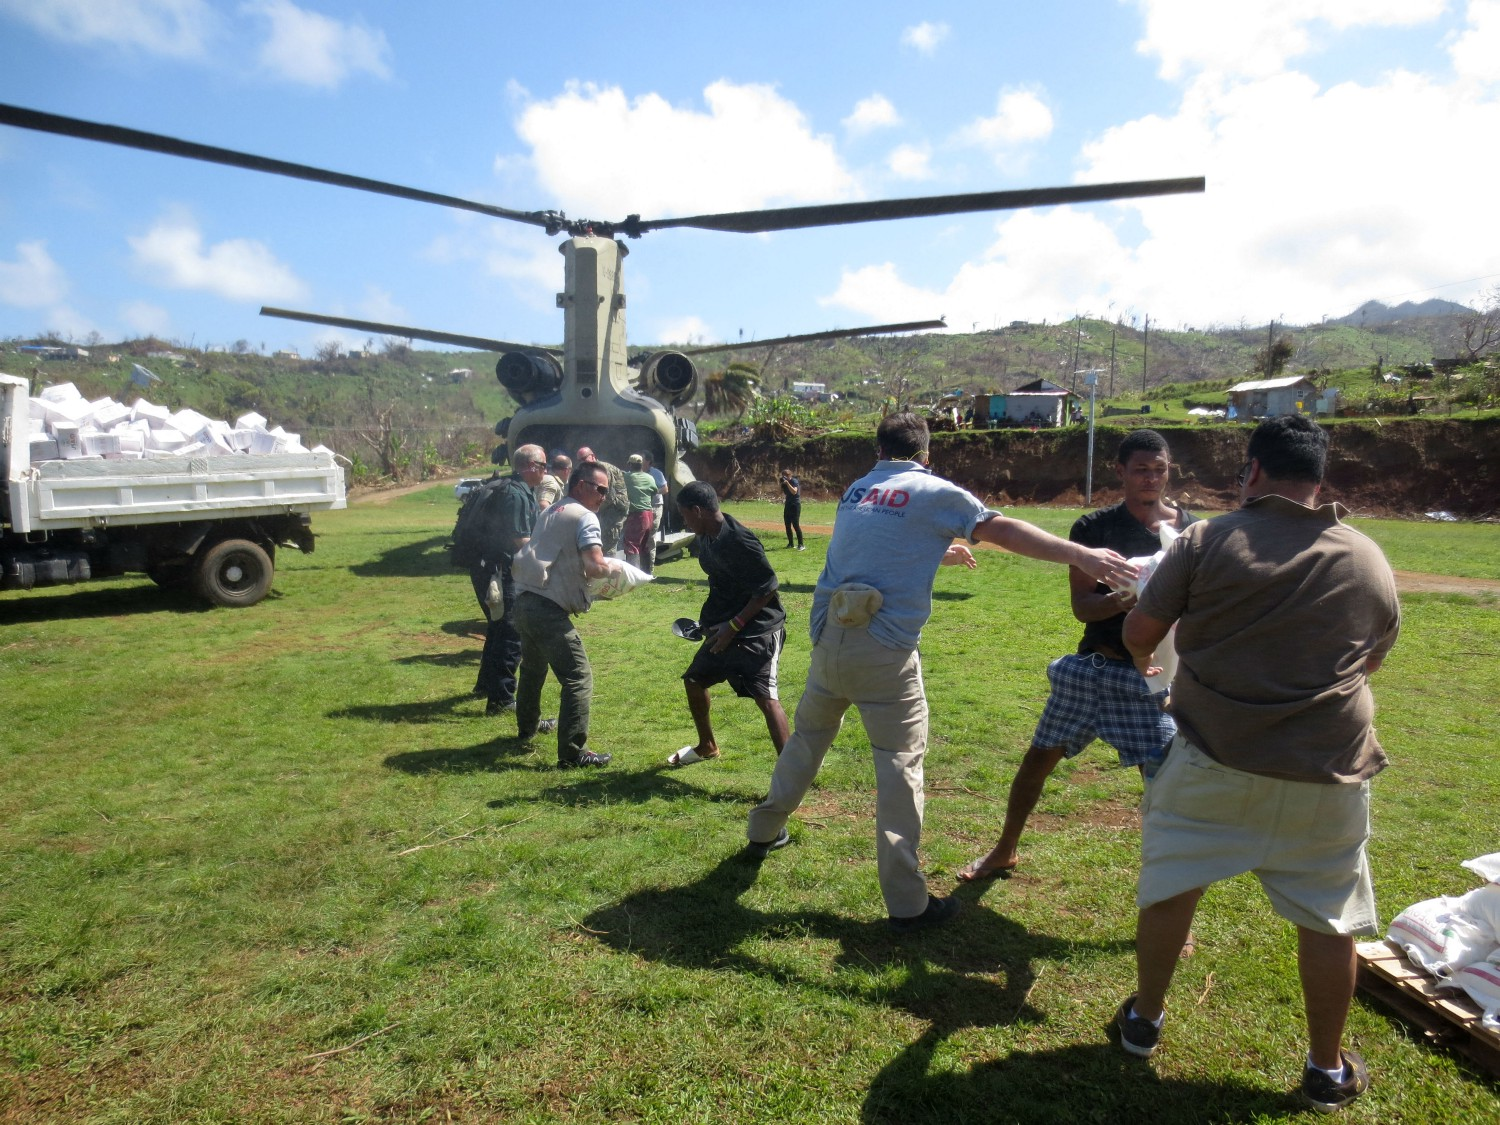 USAID staff work with local residents to unload emergency food assistance from the back of a U.S. military helicopter. Following Hurricane Maria, the U.S. military helped the Government of Dominica to transport relief supplies to hard-to-reach towns across the island. / Ricardo Herrera, USAID